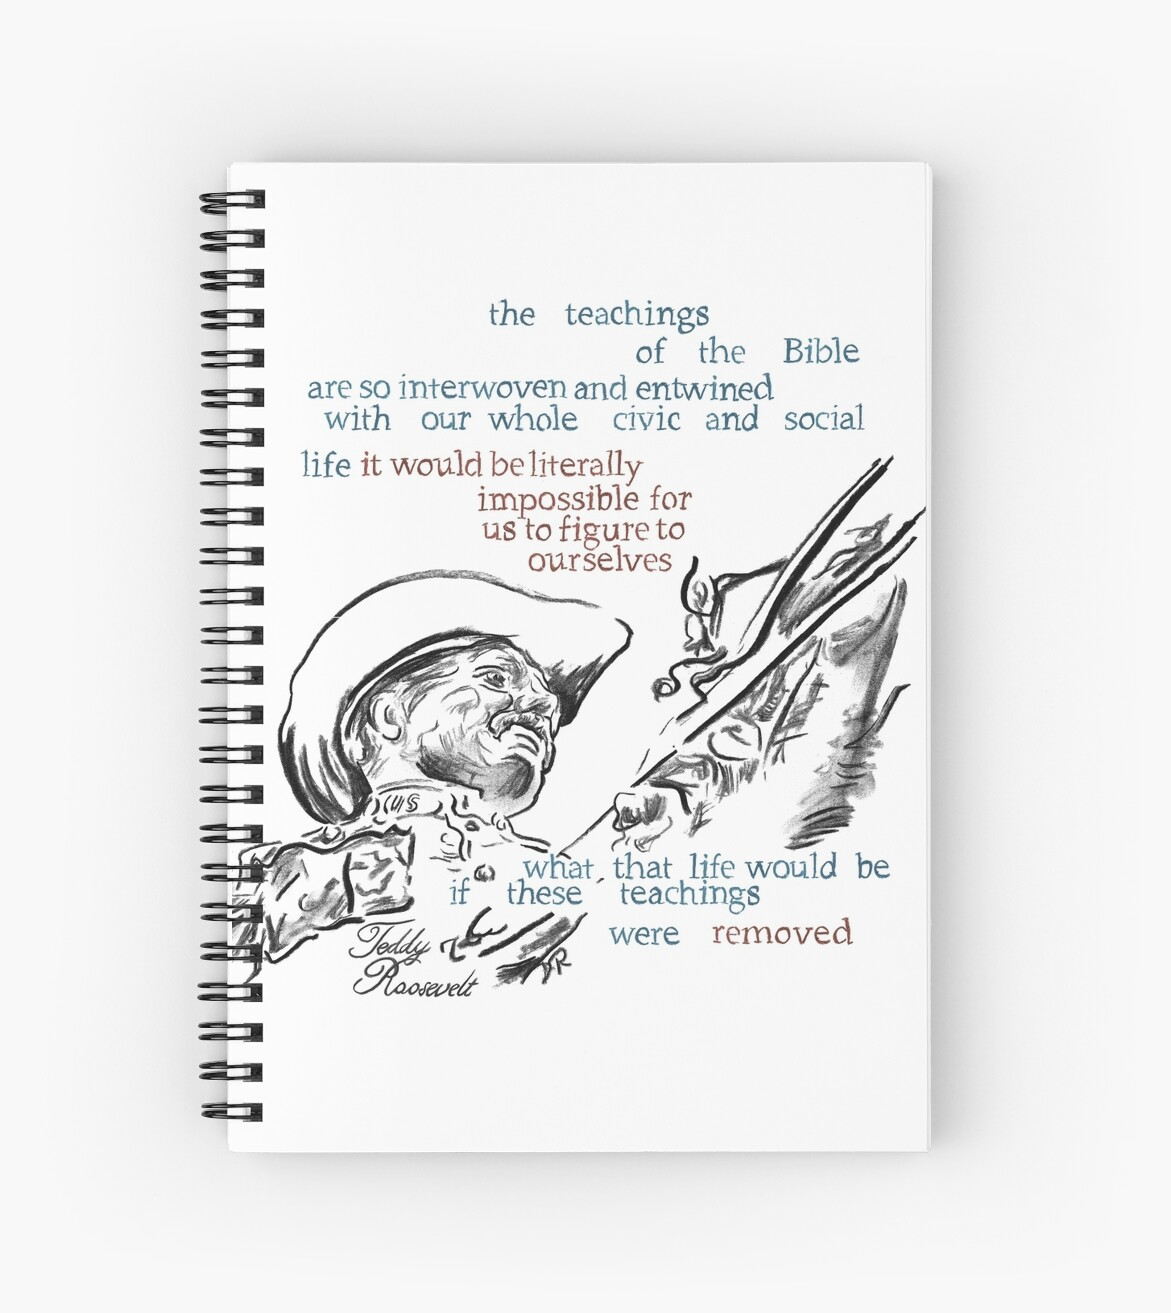 Teddy Roosevelt Picture Quote - America by Douglas Rickard